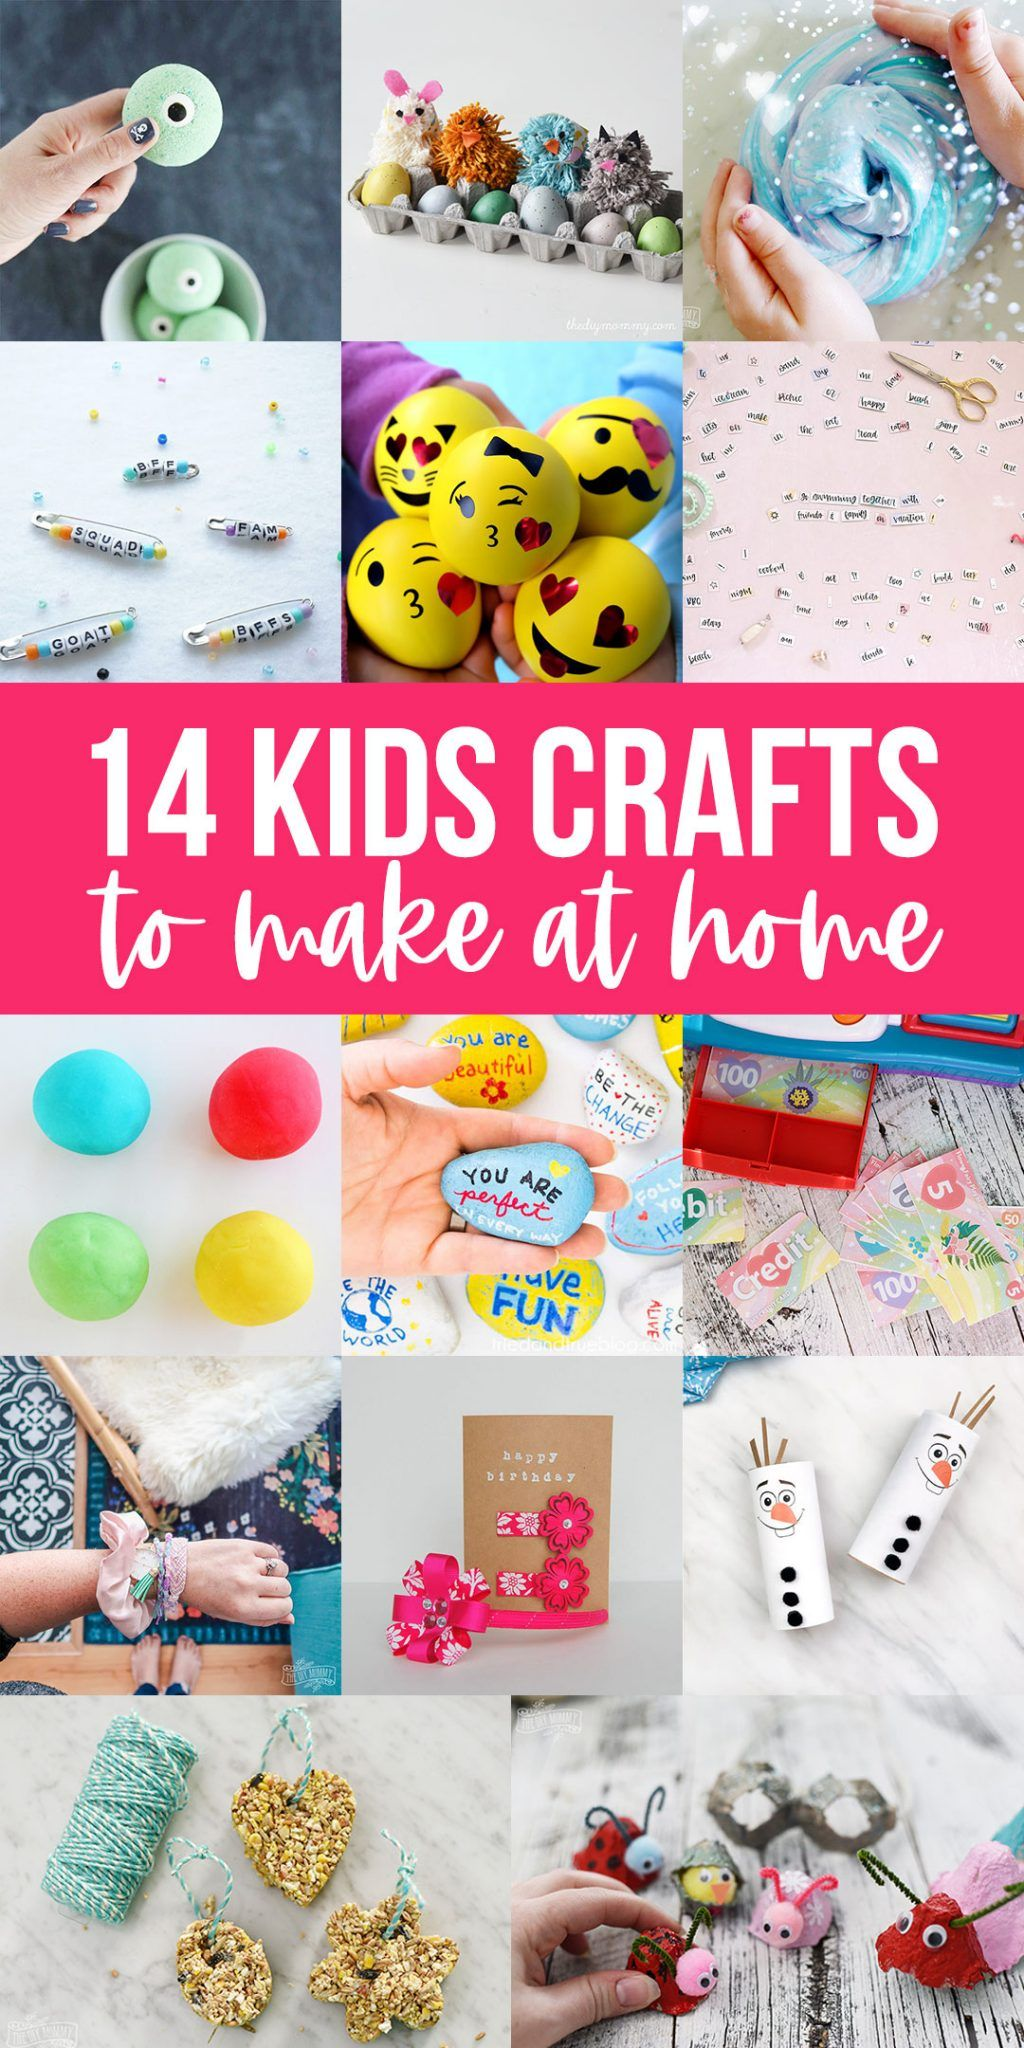 13+ Fun crafts to do at home for kids information